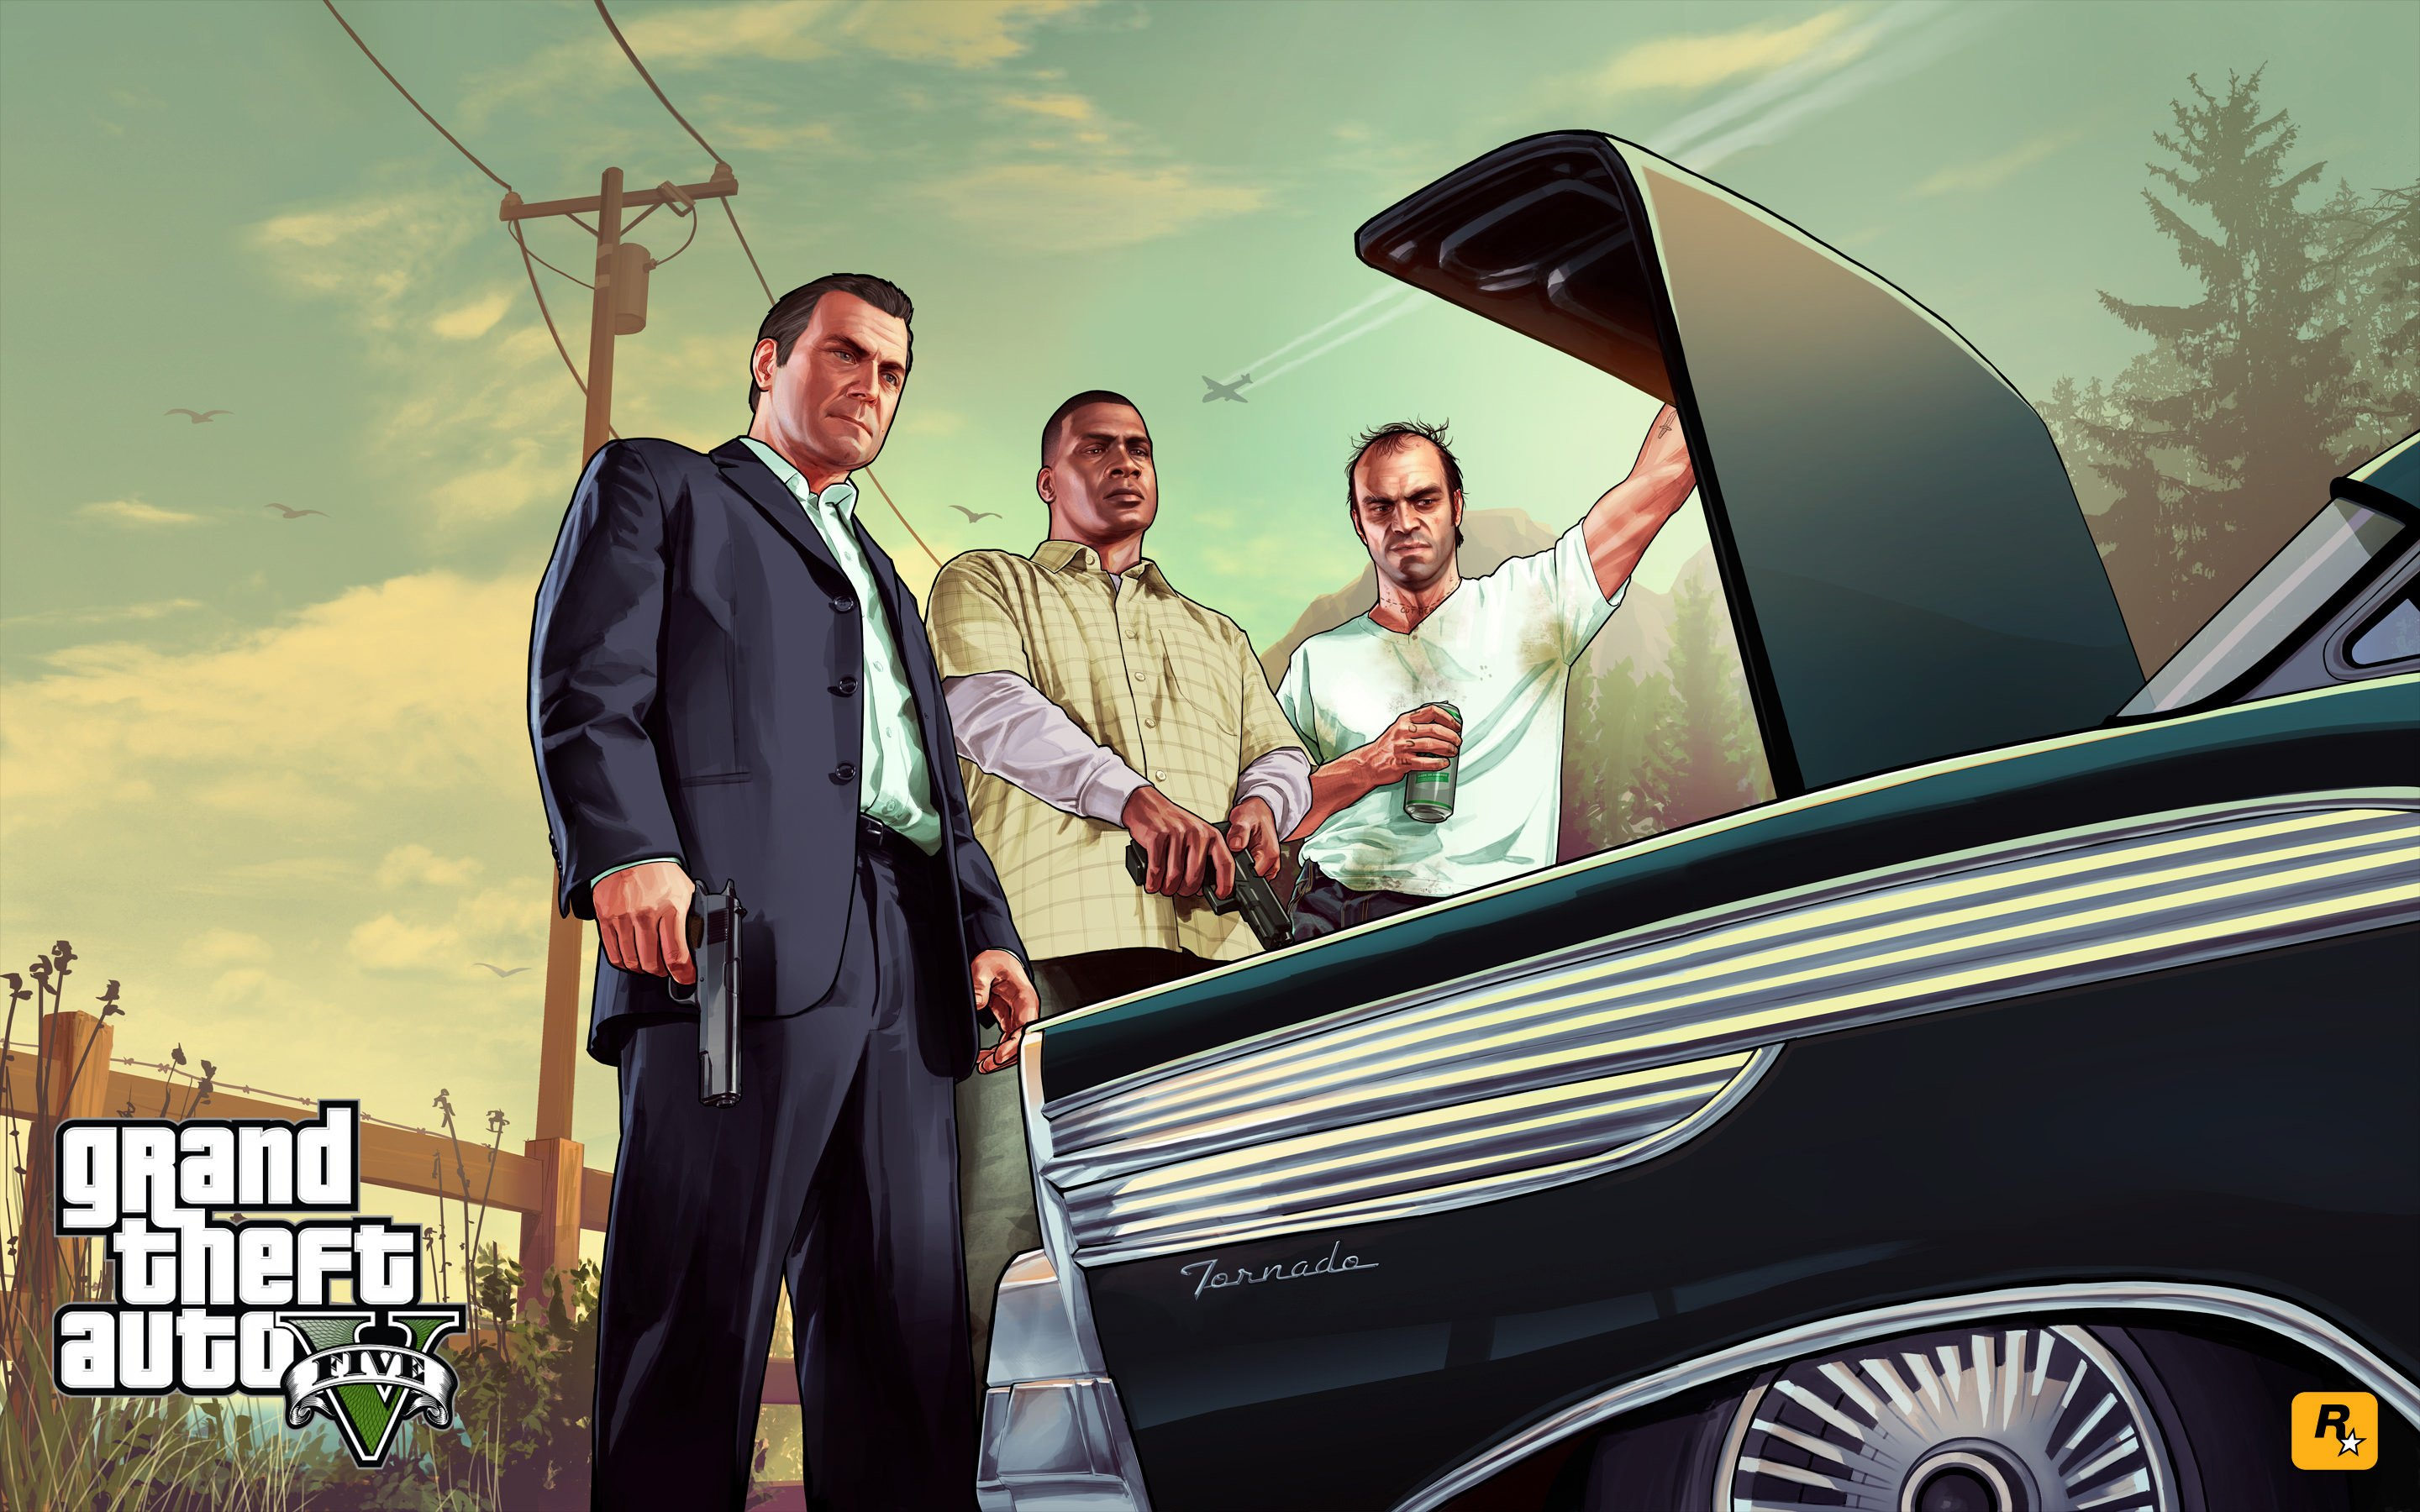 Gta 5 Characters Wallpaper for Desktop 2880x1800